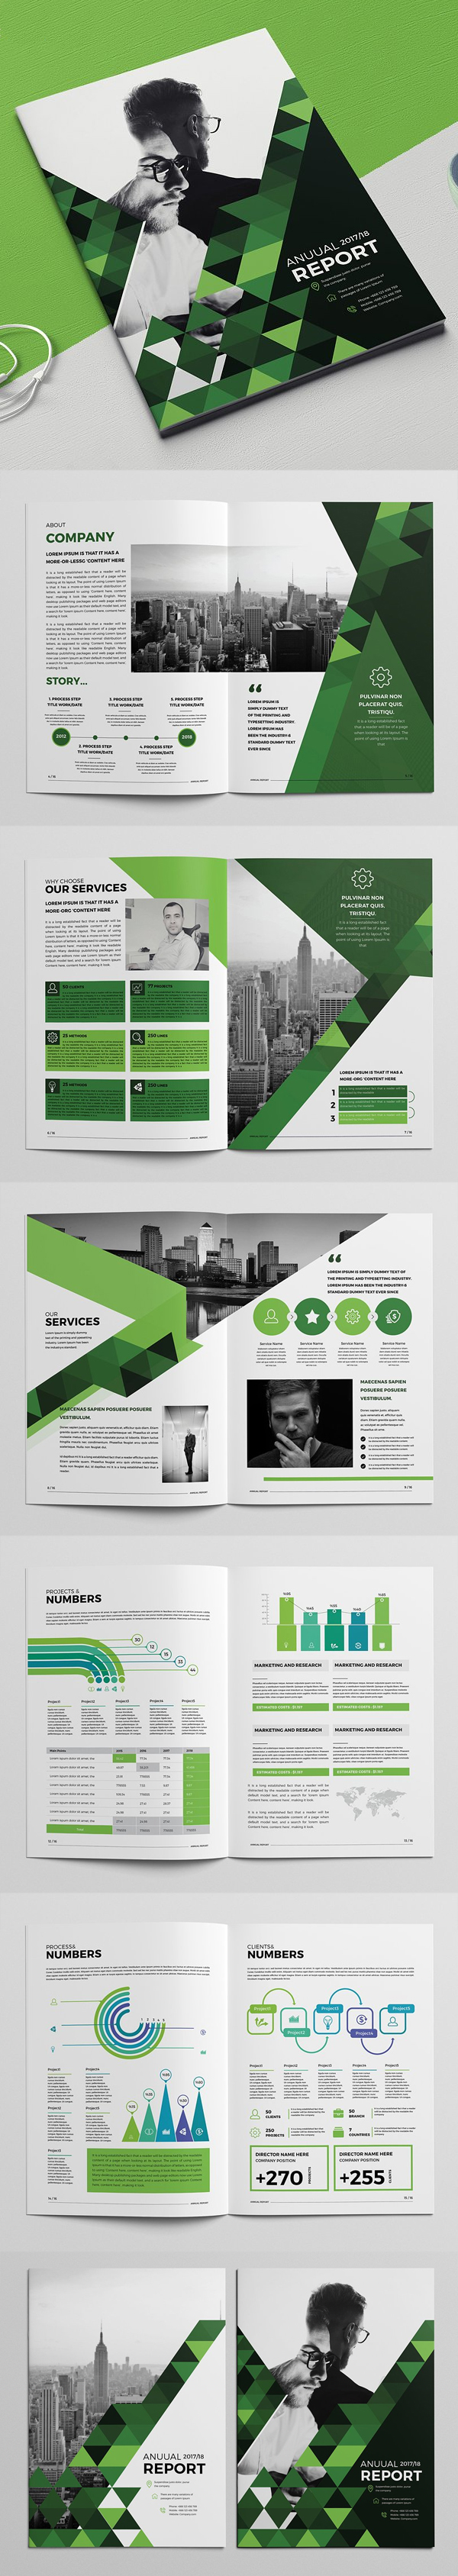 100 Professional Corporate Brochure Templates - 79